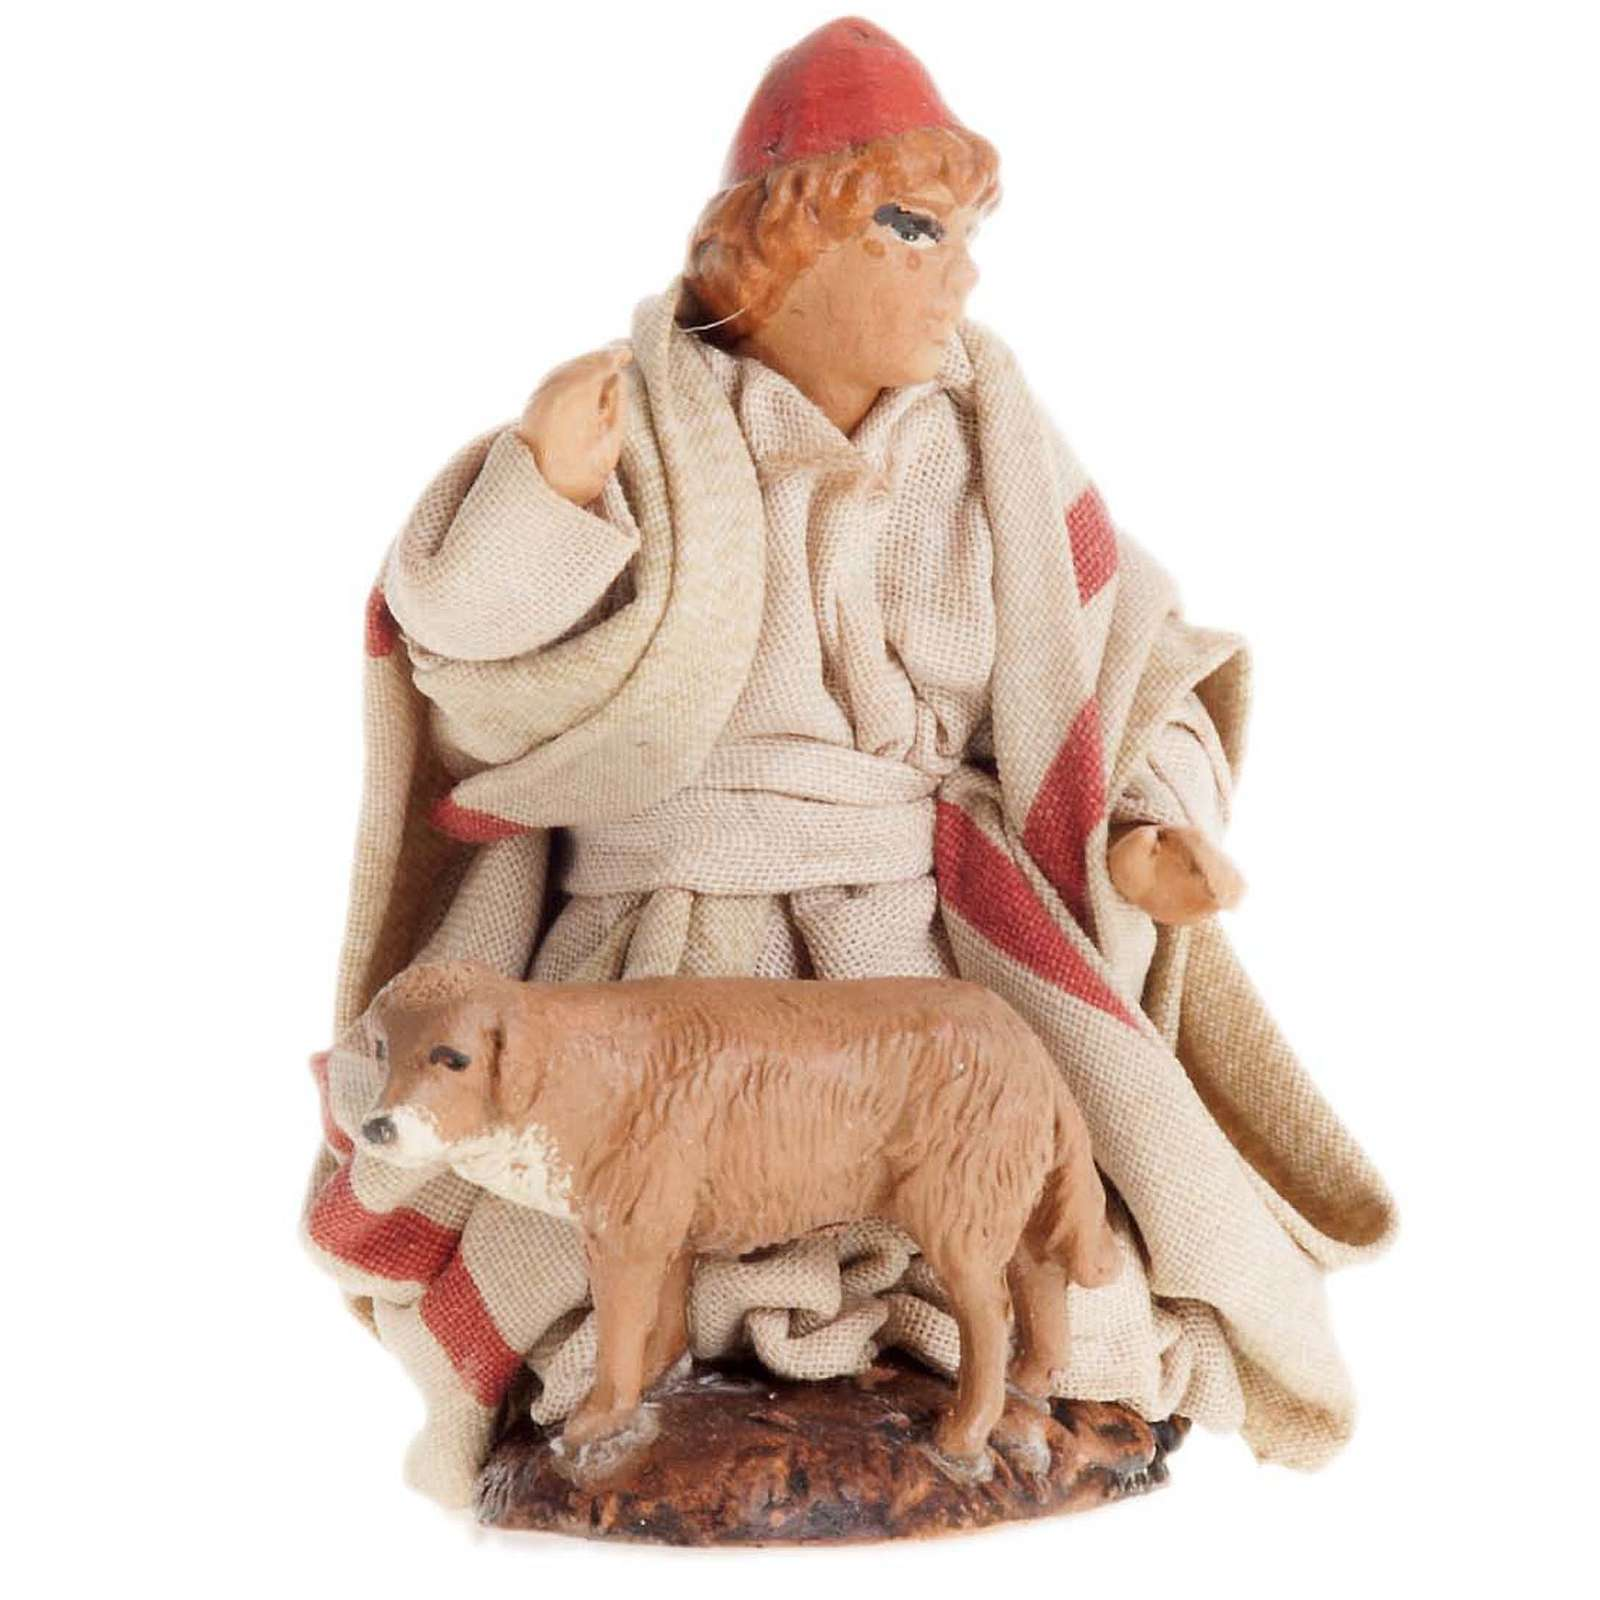 Neapolitan Nativity figurine, Child with dog 8cm 4